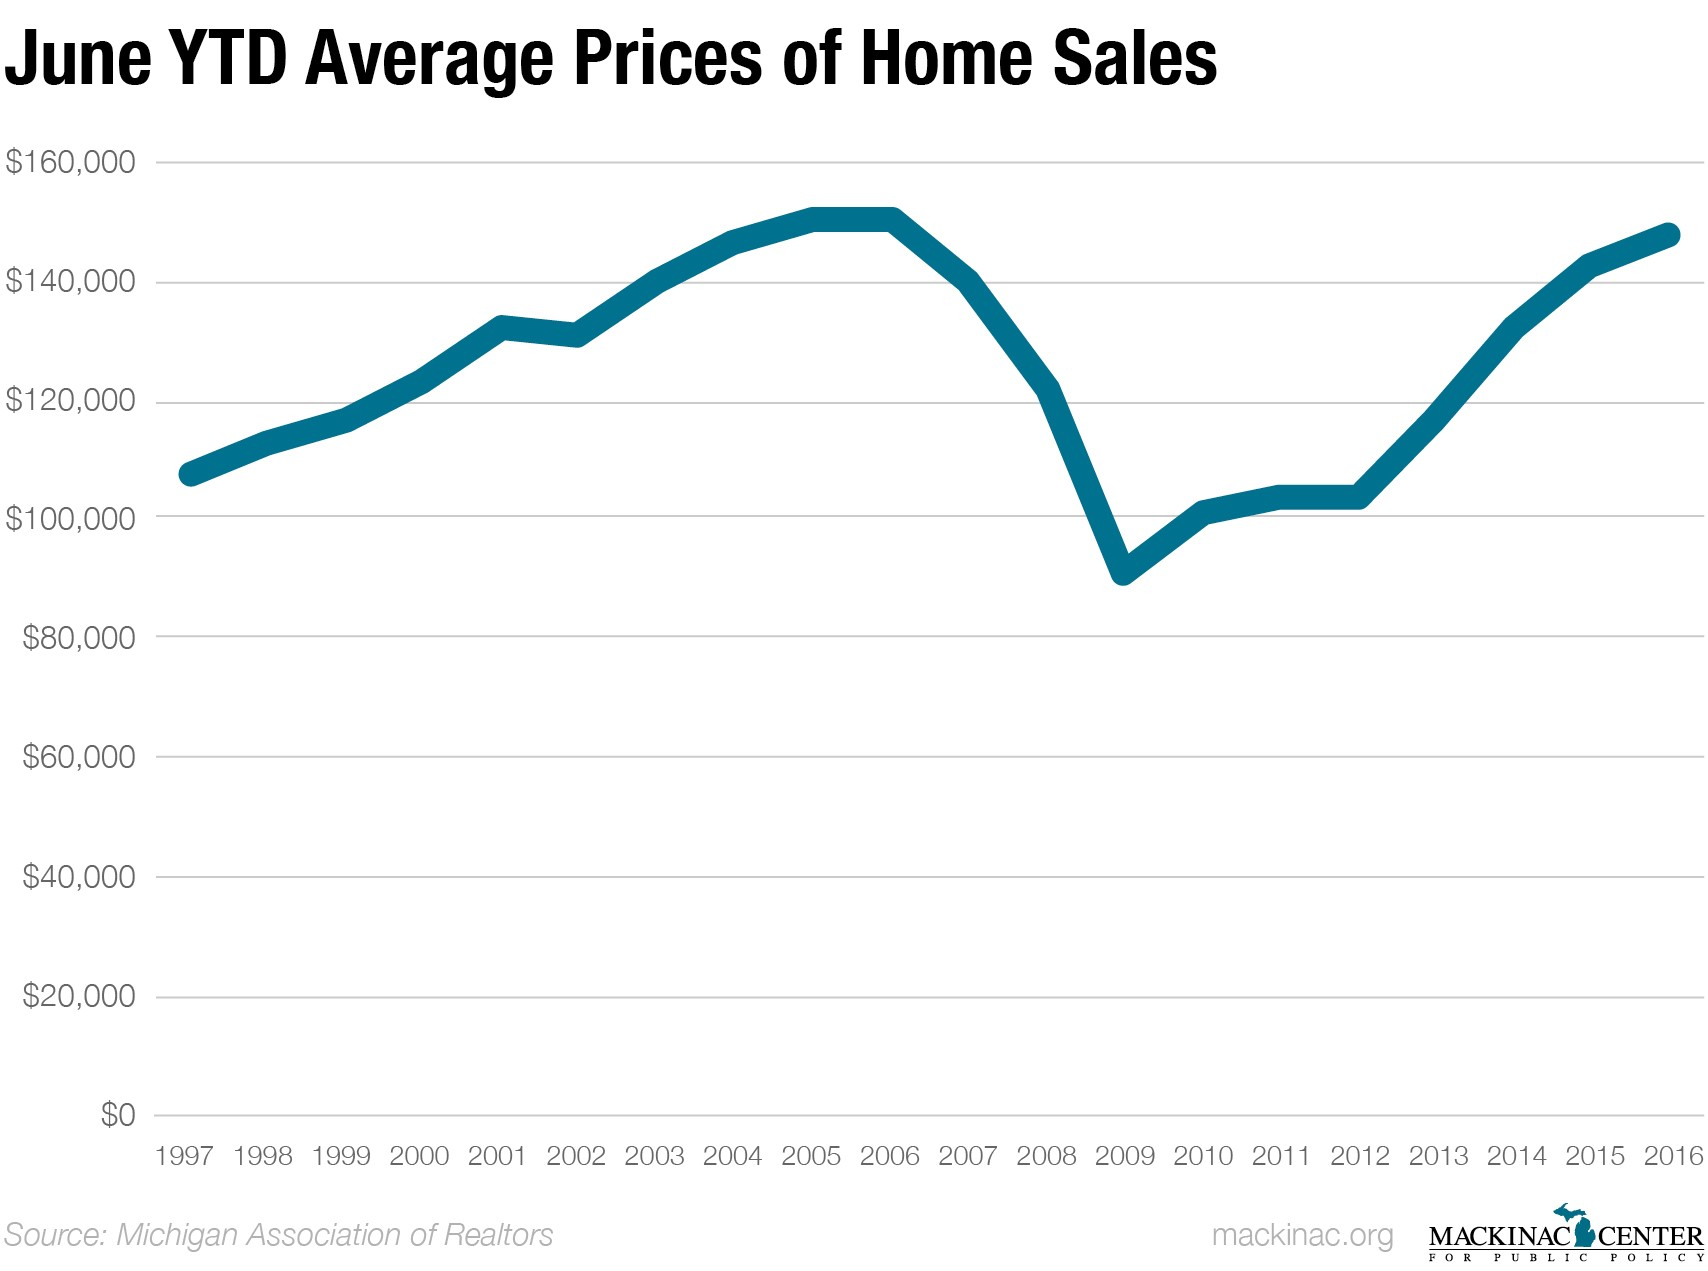 The Price Of Average Home In Michigan First Six Months 2016 Was 147 323 This Is Highest Since 2006 And Roaching Record Levels